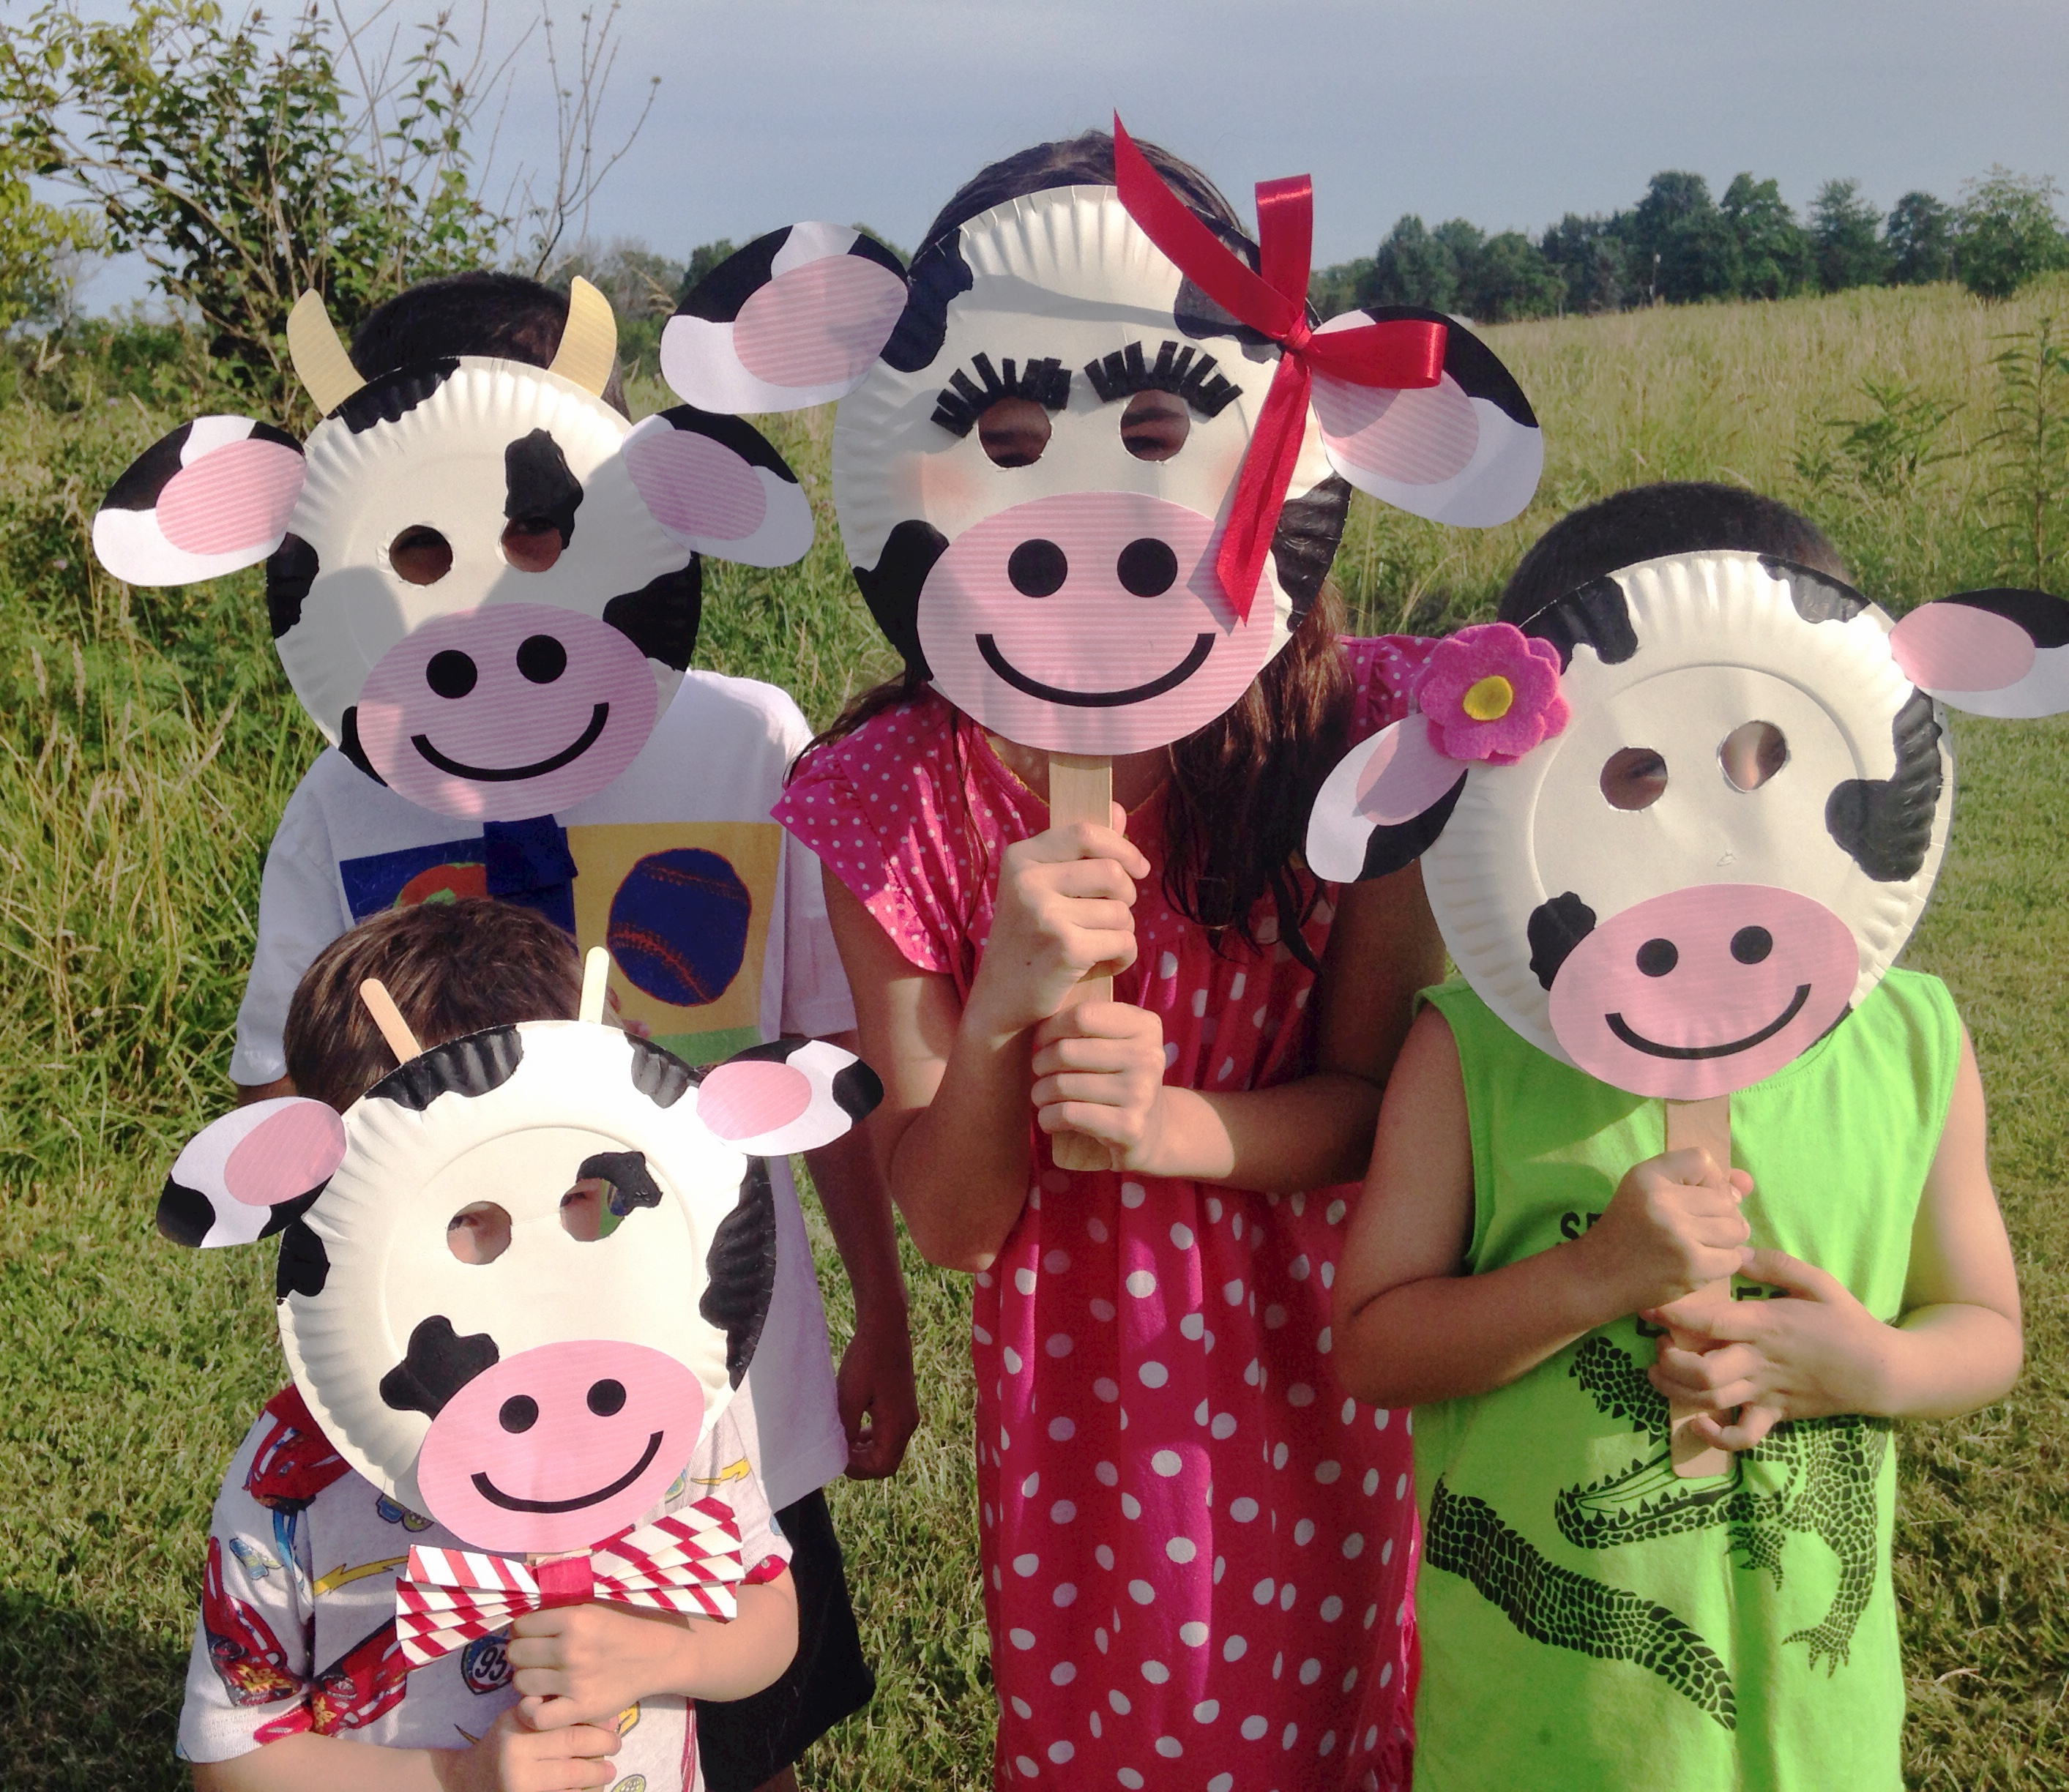 Chick-fil-a Cow Appreciation Day | Cow Appreciation Day Ideas | Chick- & Chick-fil-A Cow Appreciation Day Paper Plate Cow Masks With Free ...